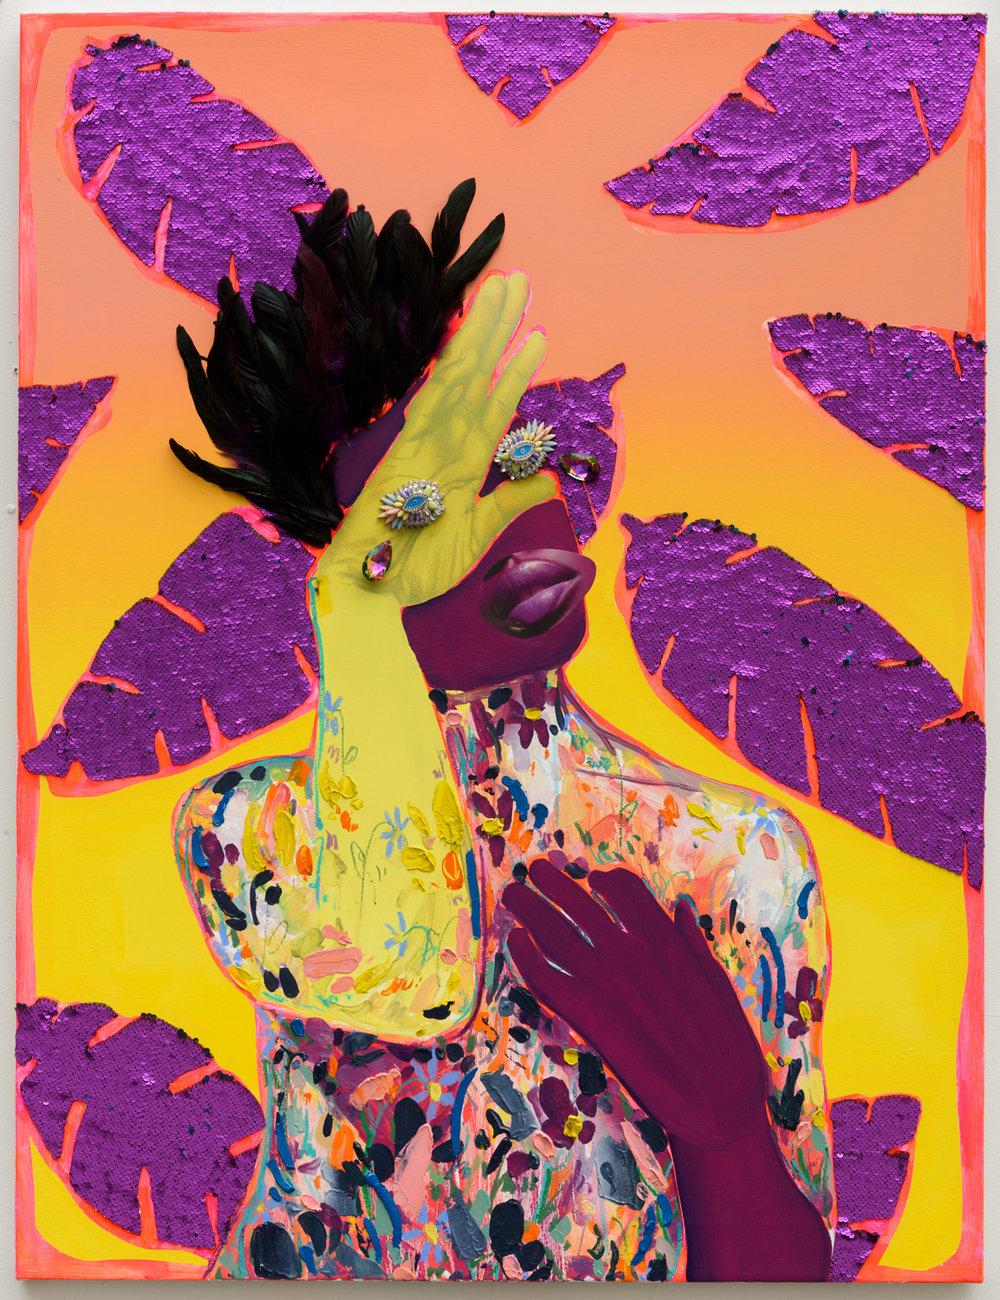 Devan Shimoyama   Crowned  (2017) Oil, color pencil, jewelry, sequins, collage, acrylic and feathers on canvas, 32 x 40in.